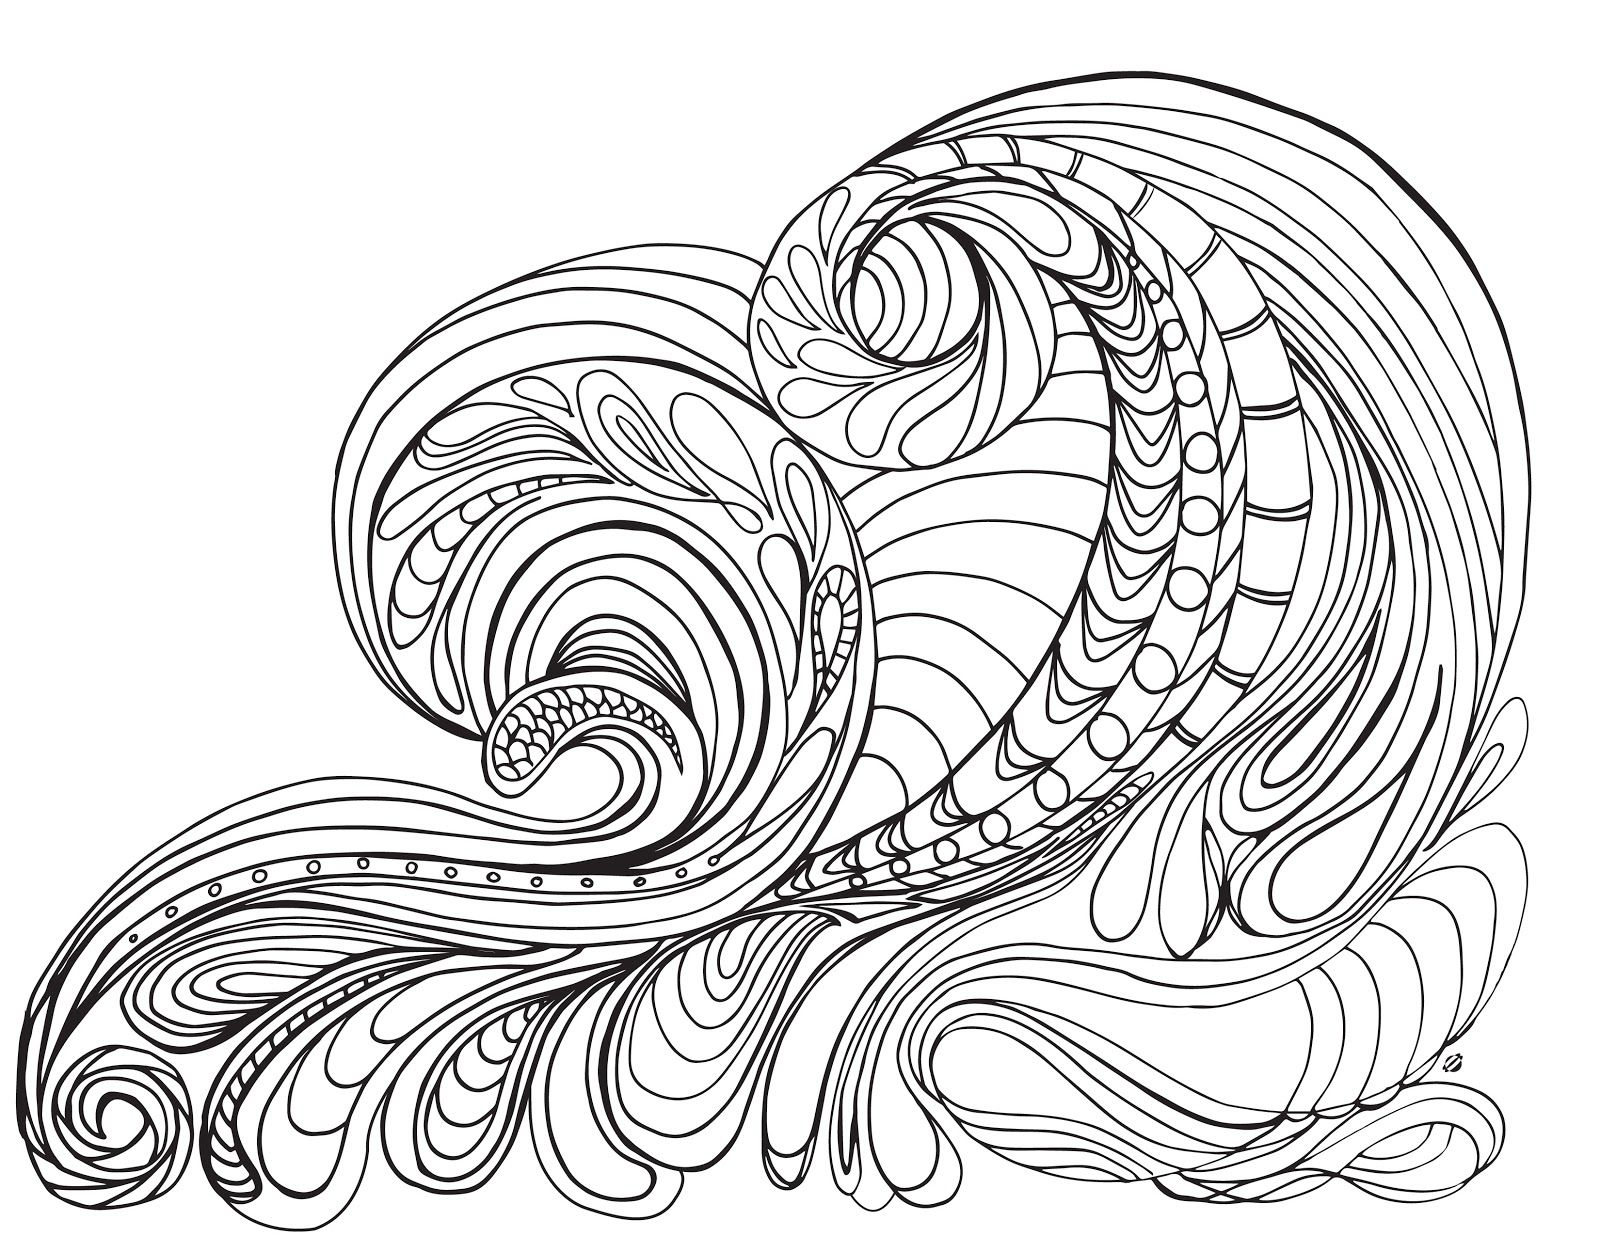 1600x1236 Astonishing Ocean Waves Coloring Pages Many Interesting Cliparts